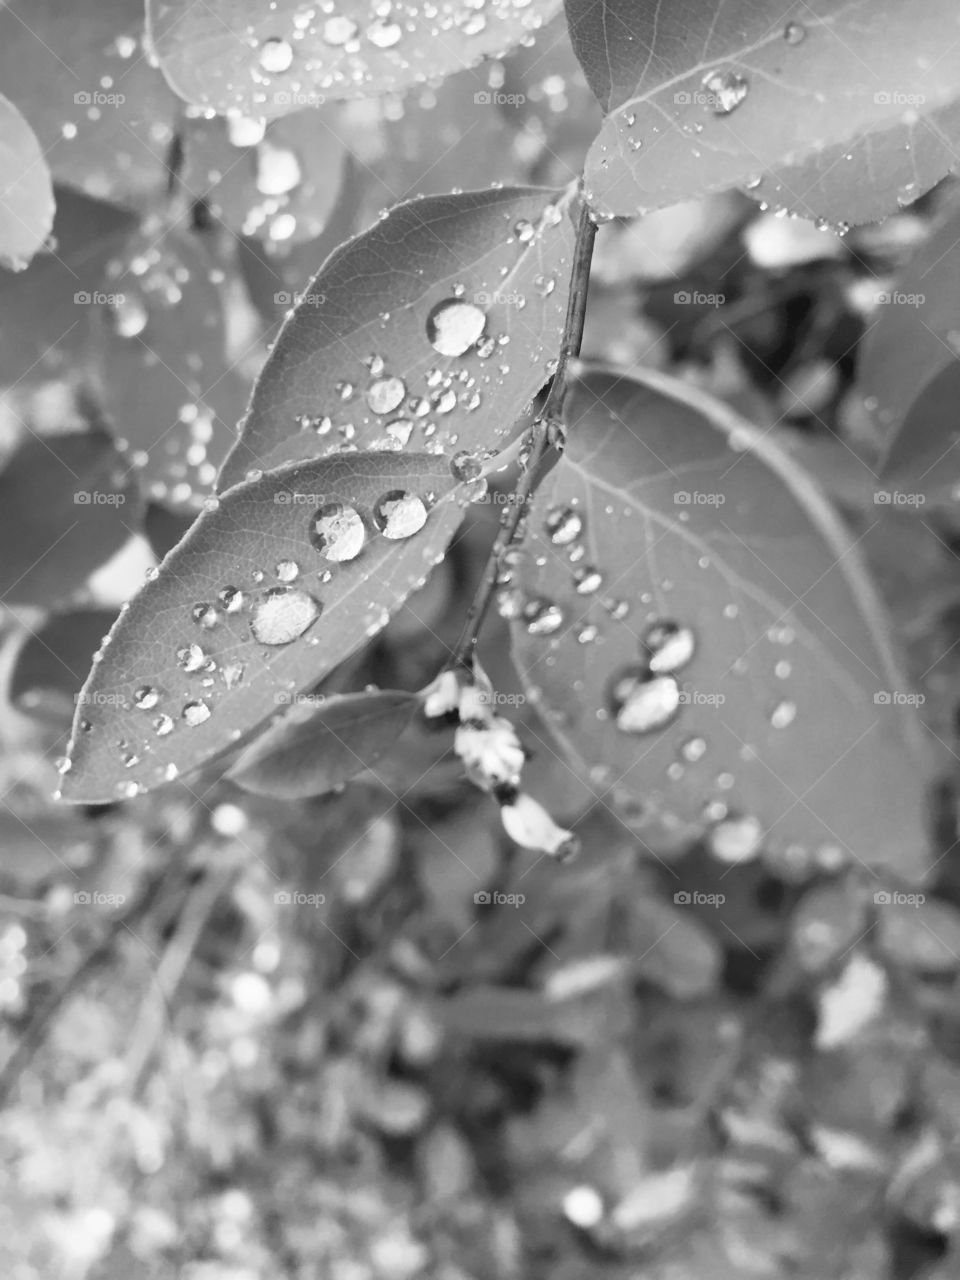 Waterdrops on leaves in close up